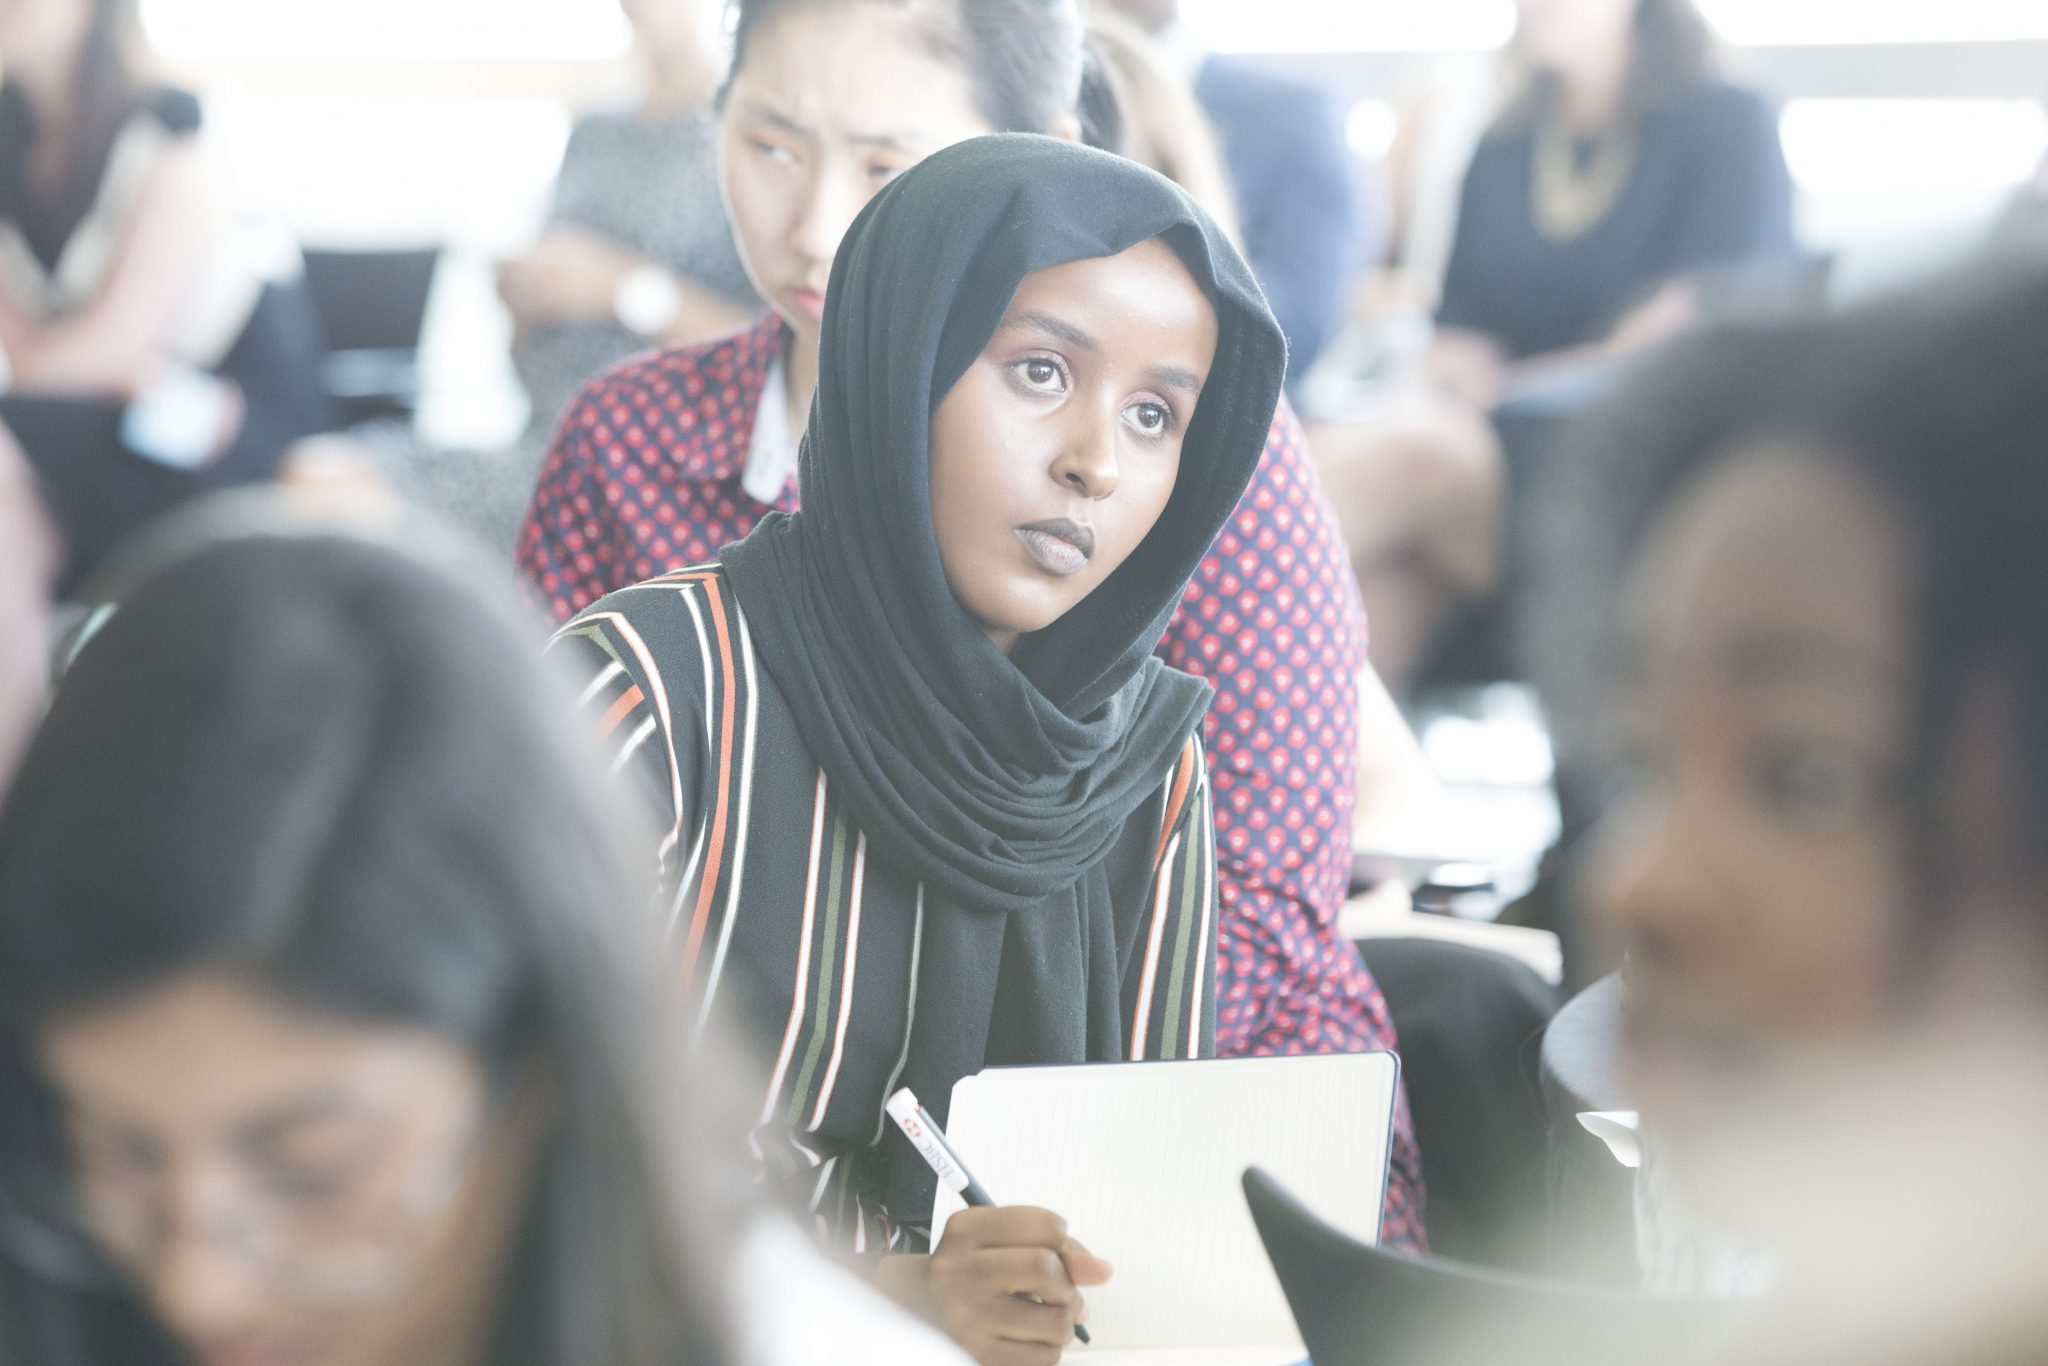 Female-identifying student wearing a hijab and writing in a notebook during a FreshLook event